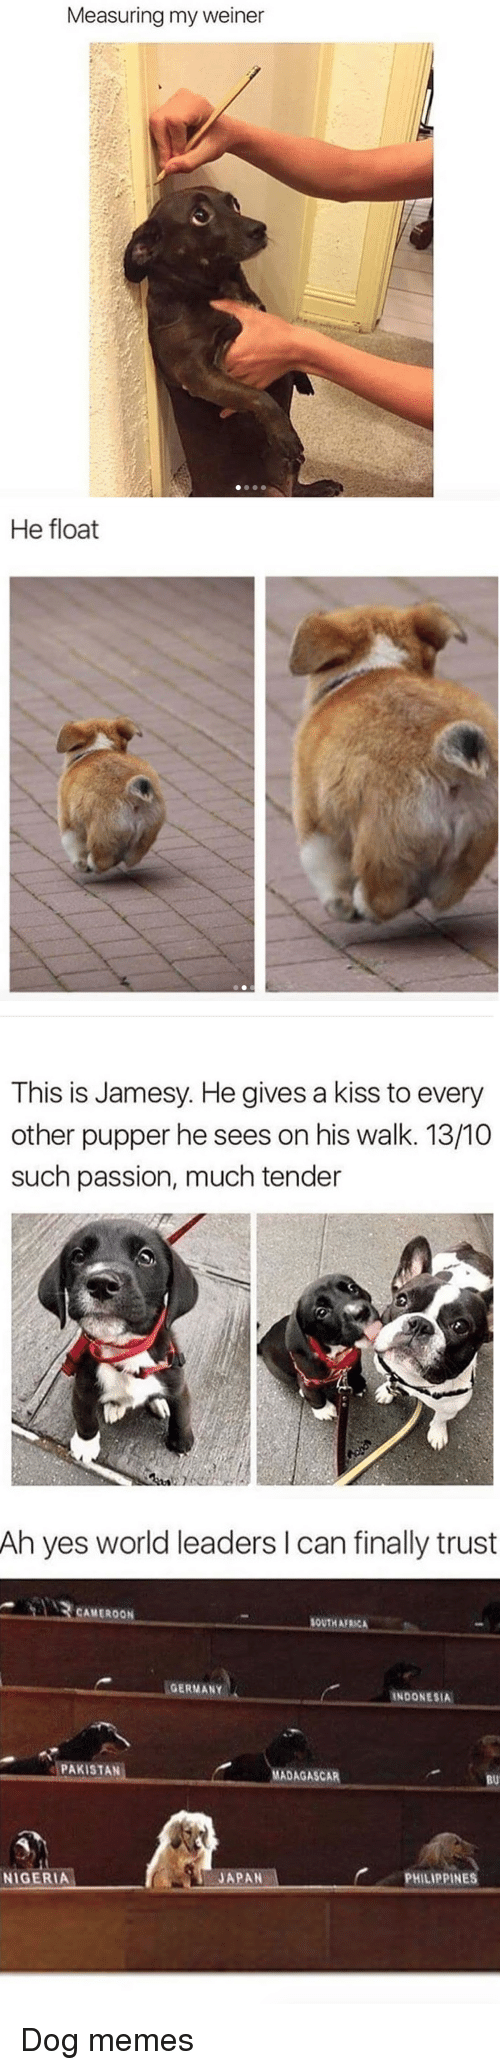 Africa, Memes, and Germany: Measuring my weiner   He float   This is Jamesy. He gives a kiss to every  other pupper he sees on his walk. 13/10  such passion, much tender   Ah yes world leaders I can finally trust  CAMEROON  SOUTH AFRICA  GERMANY  INDONESIA  PAKISTAN  MADAGASCAR  BU  PHILIPPINES  NIGERIA  JAPAN <p>Dog memes</p>